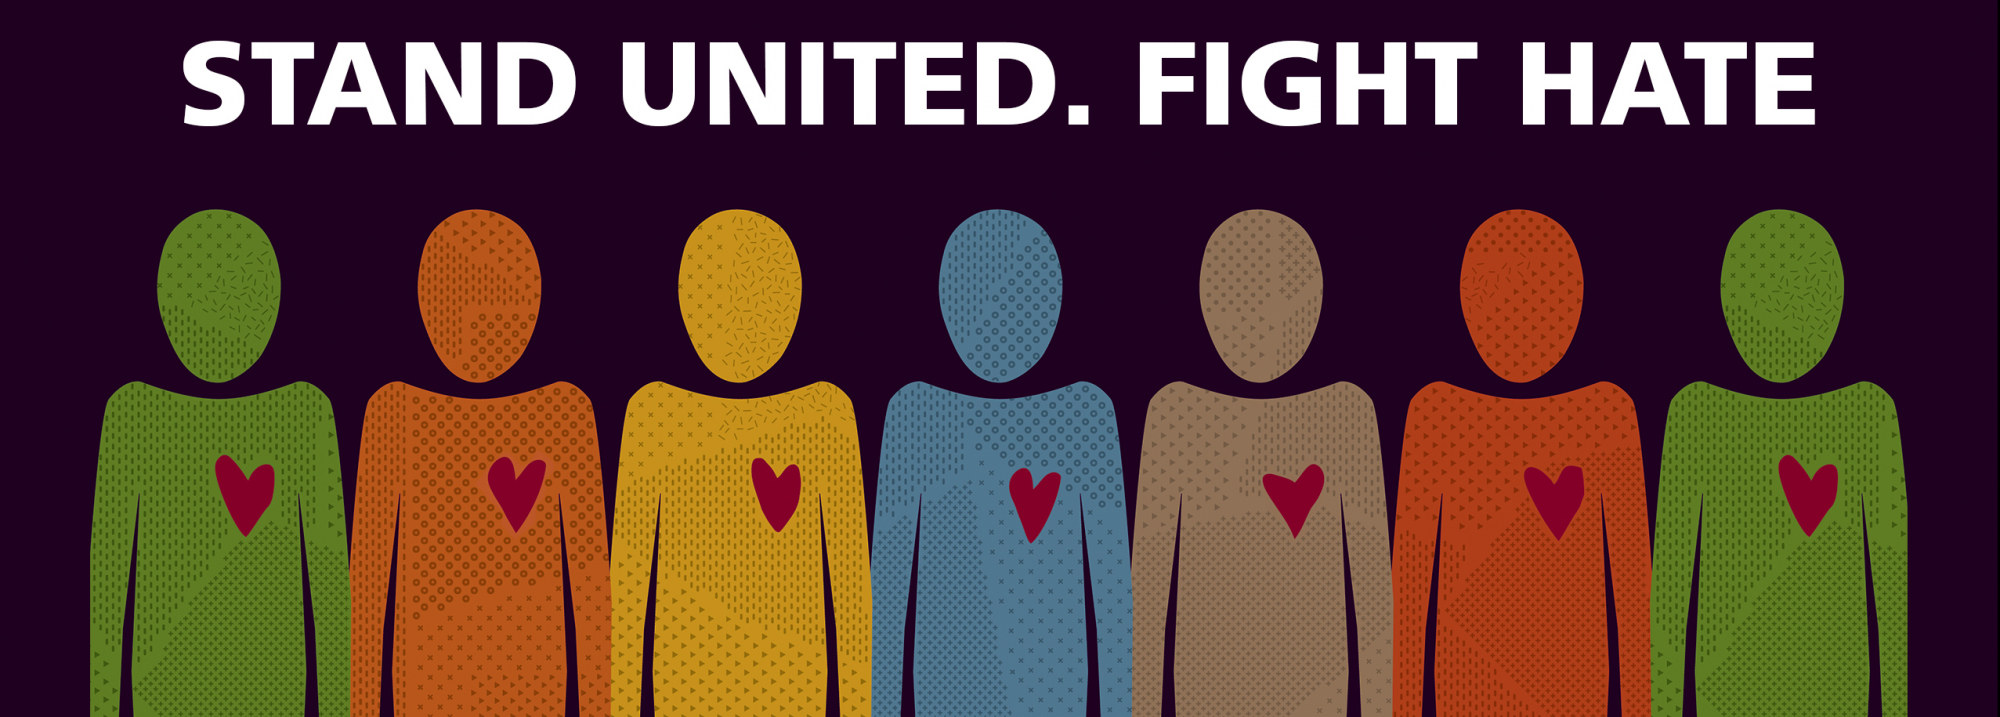 "Illustration of human figures standing side by side with the caption ""stand united. fight hate."""